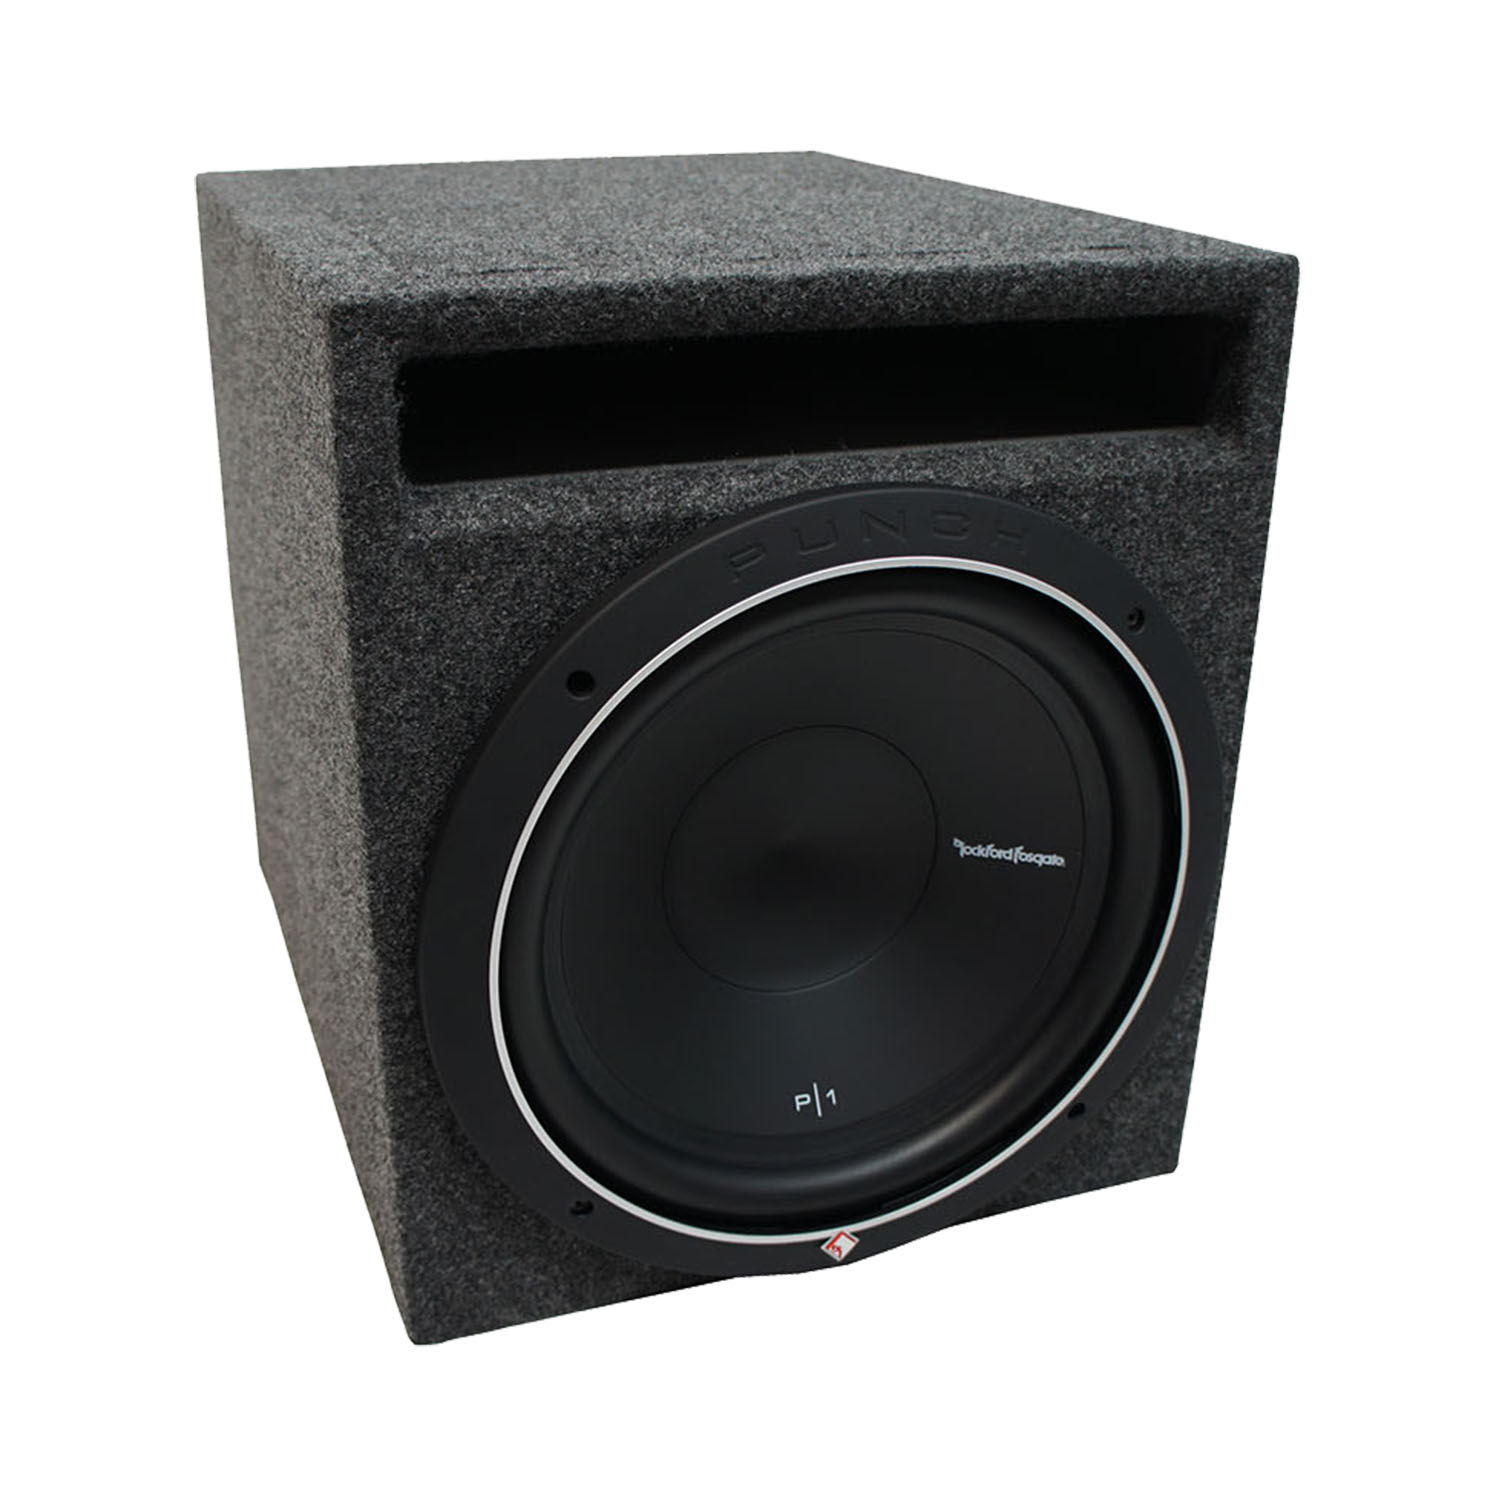 """Universal Car Stereo Slotted S Port Single 10"""" Rockford Punch P1S210 Sub Box Enclosure - Final 2 Ohm"""